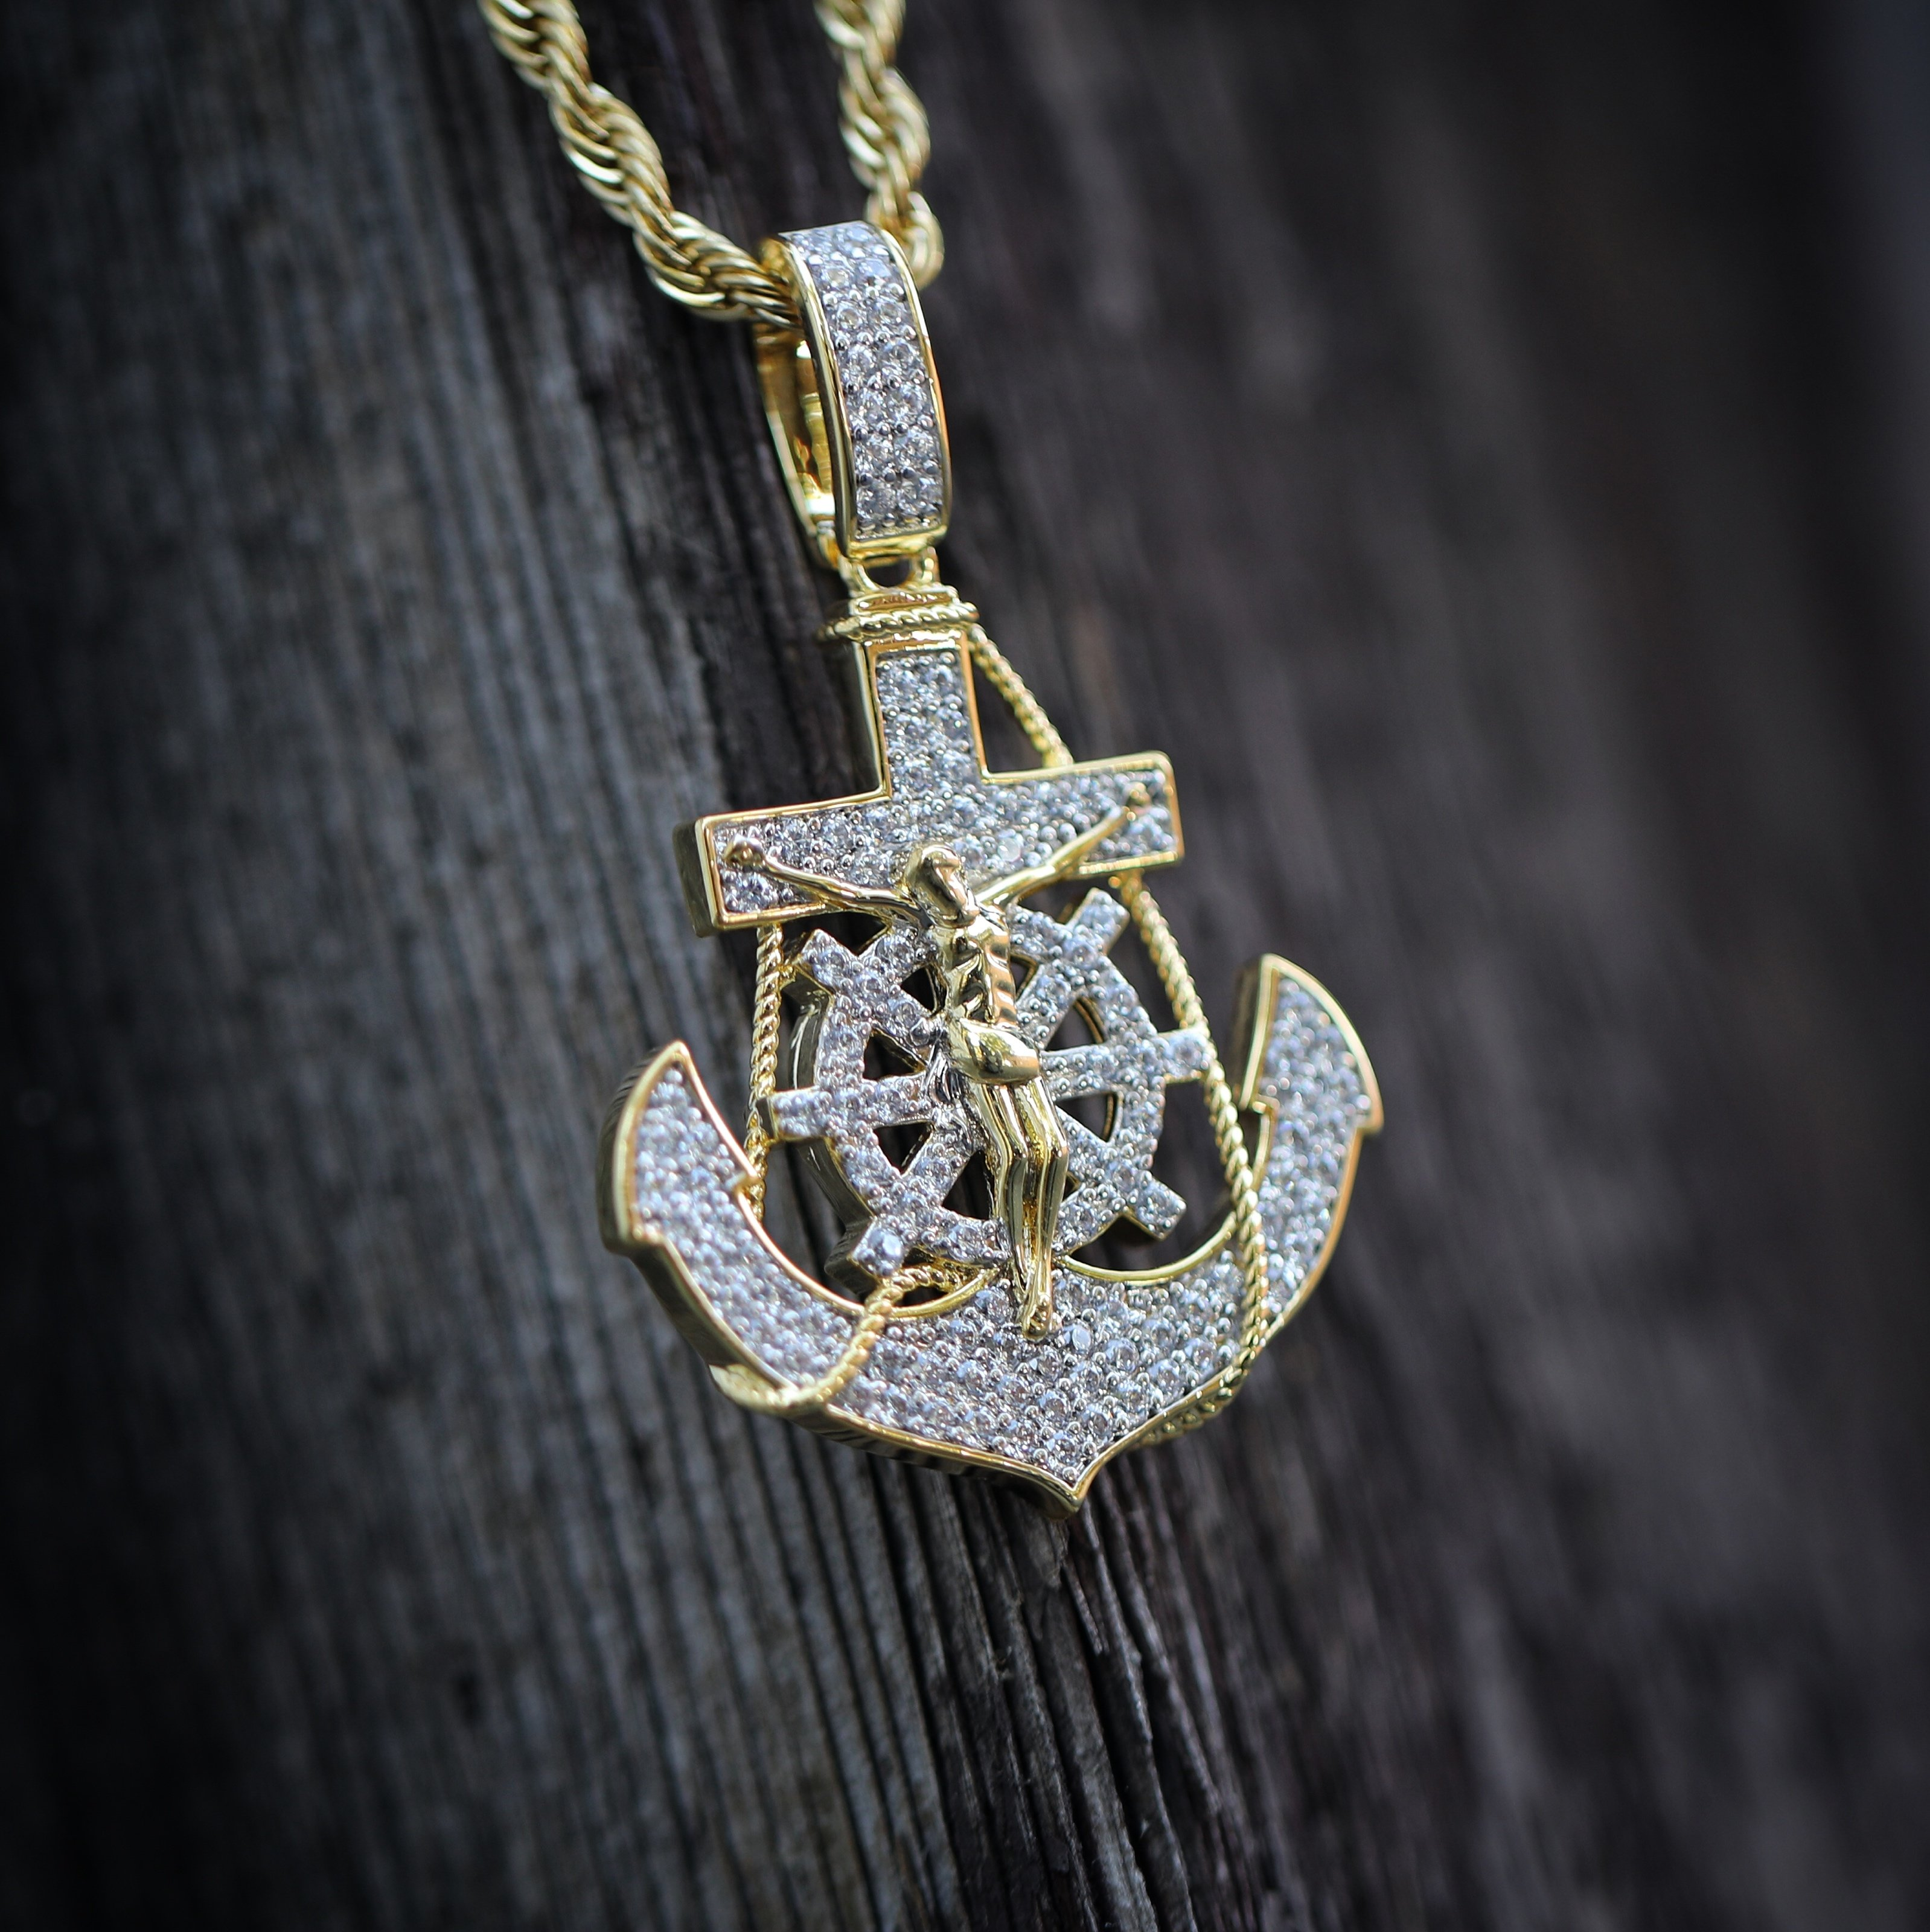 Jesus piece necklaces mens hip hop jewelry pendants chains gold iced out jesus on anchor pendant with rope chain 2399usd mozeypictures Gallery